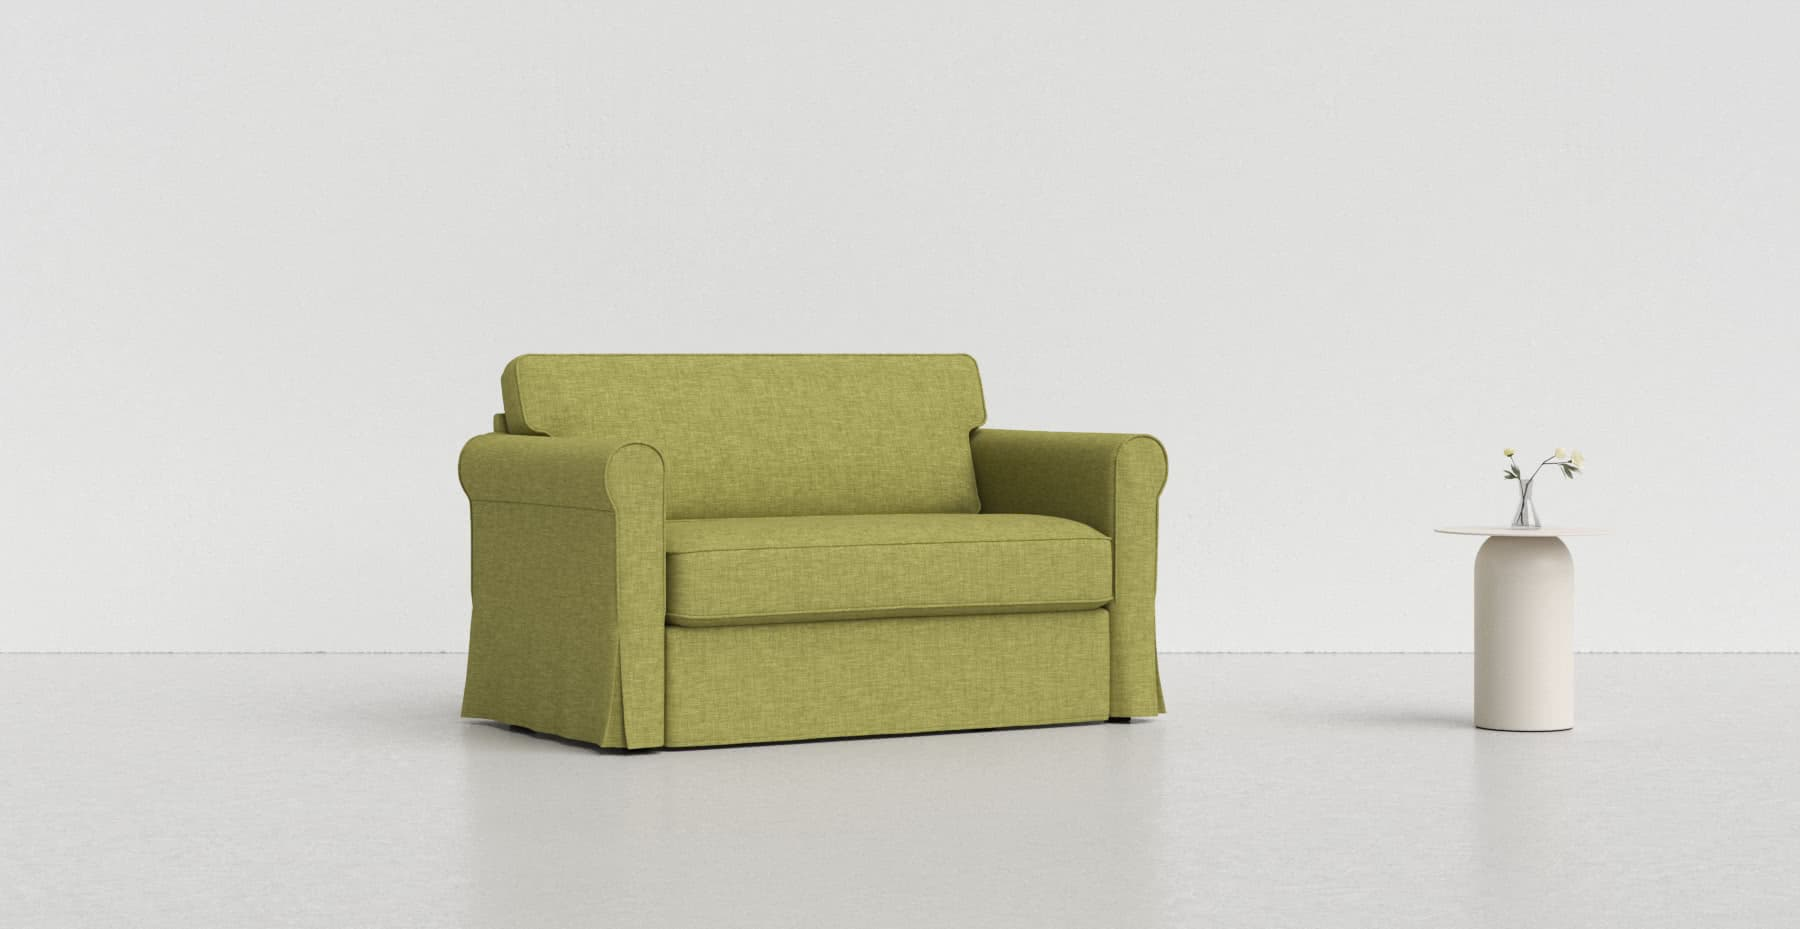 Pleasant Replacement Ikea Sofa Covers For The Discontinued Hagalund Bralicious Painted Fabric Chair Ideas Braliciousco